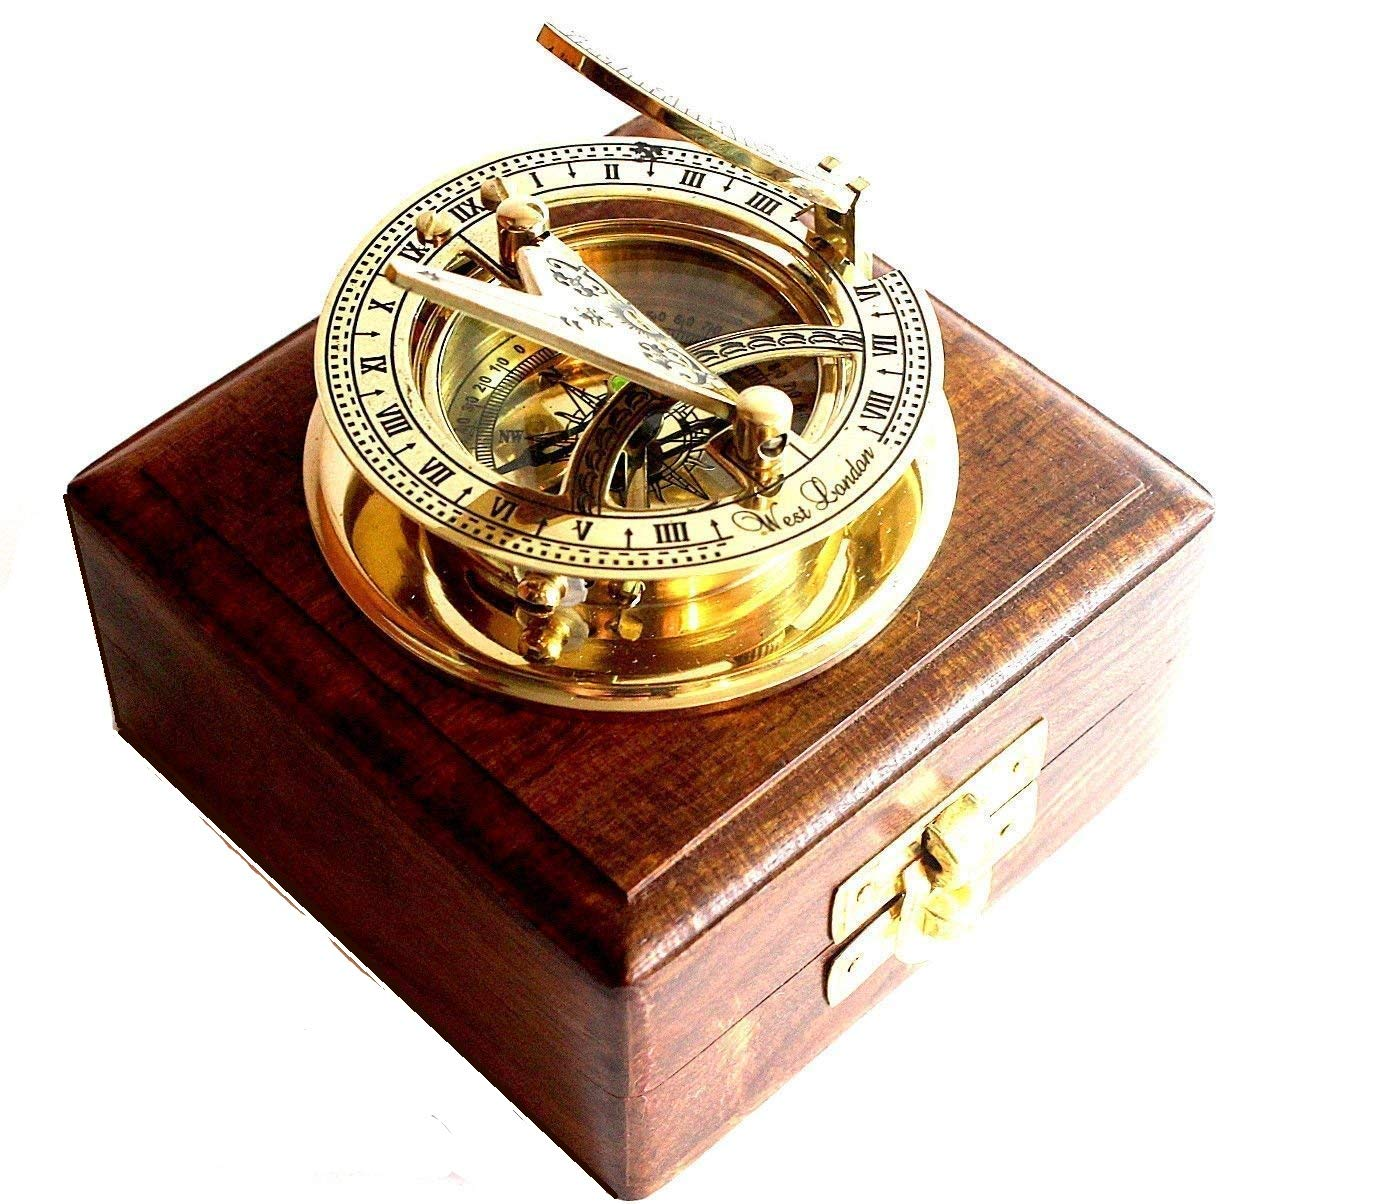 Fashion Style Antique Nautical Solid Brass Sundial Compass West London Navigational Working Maritime Compasses